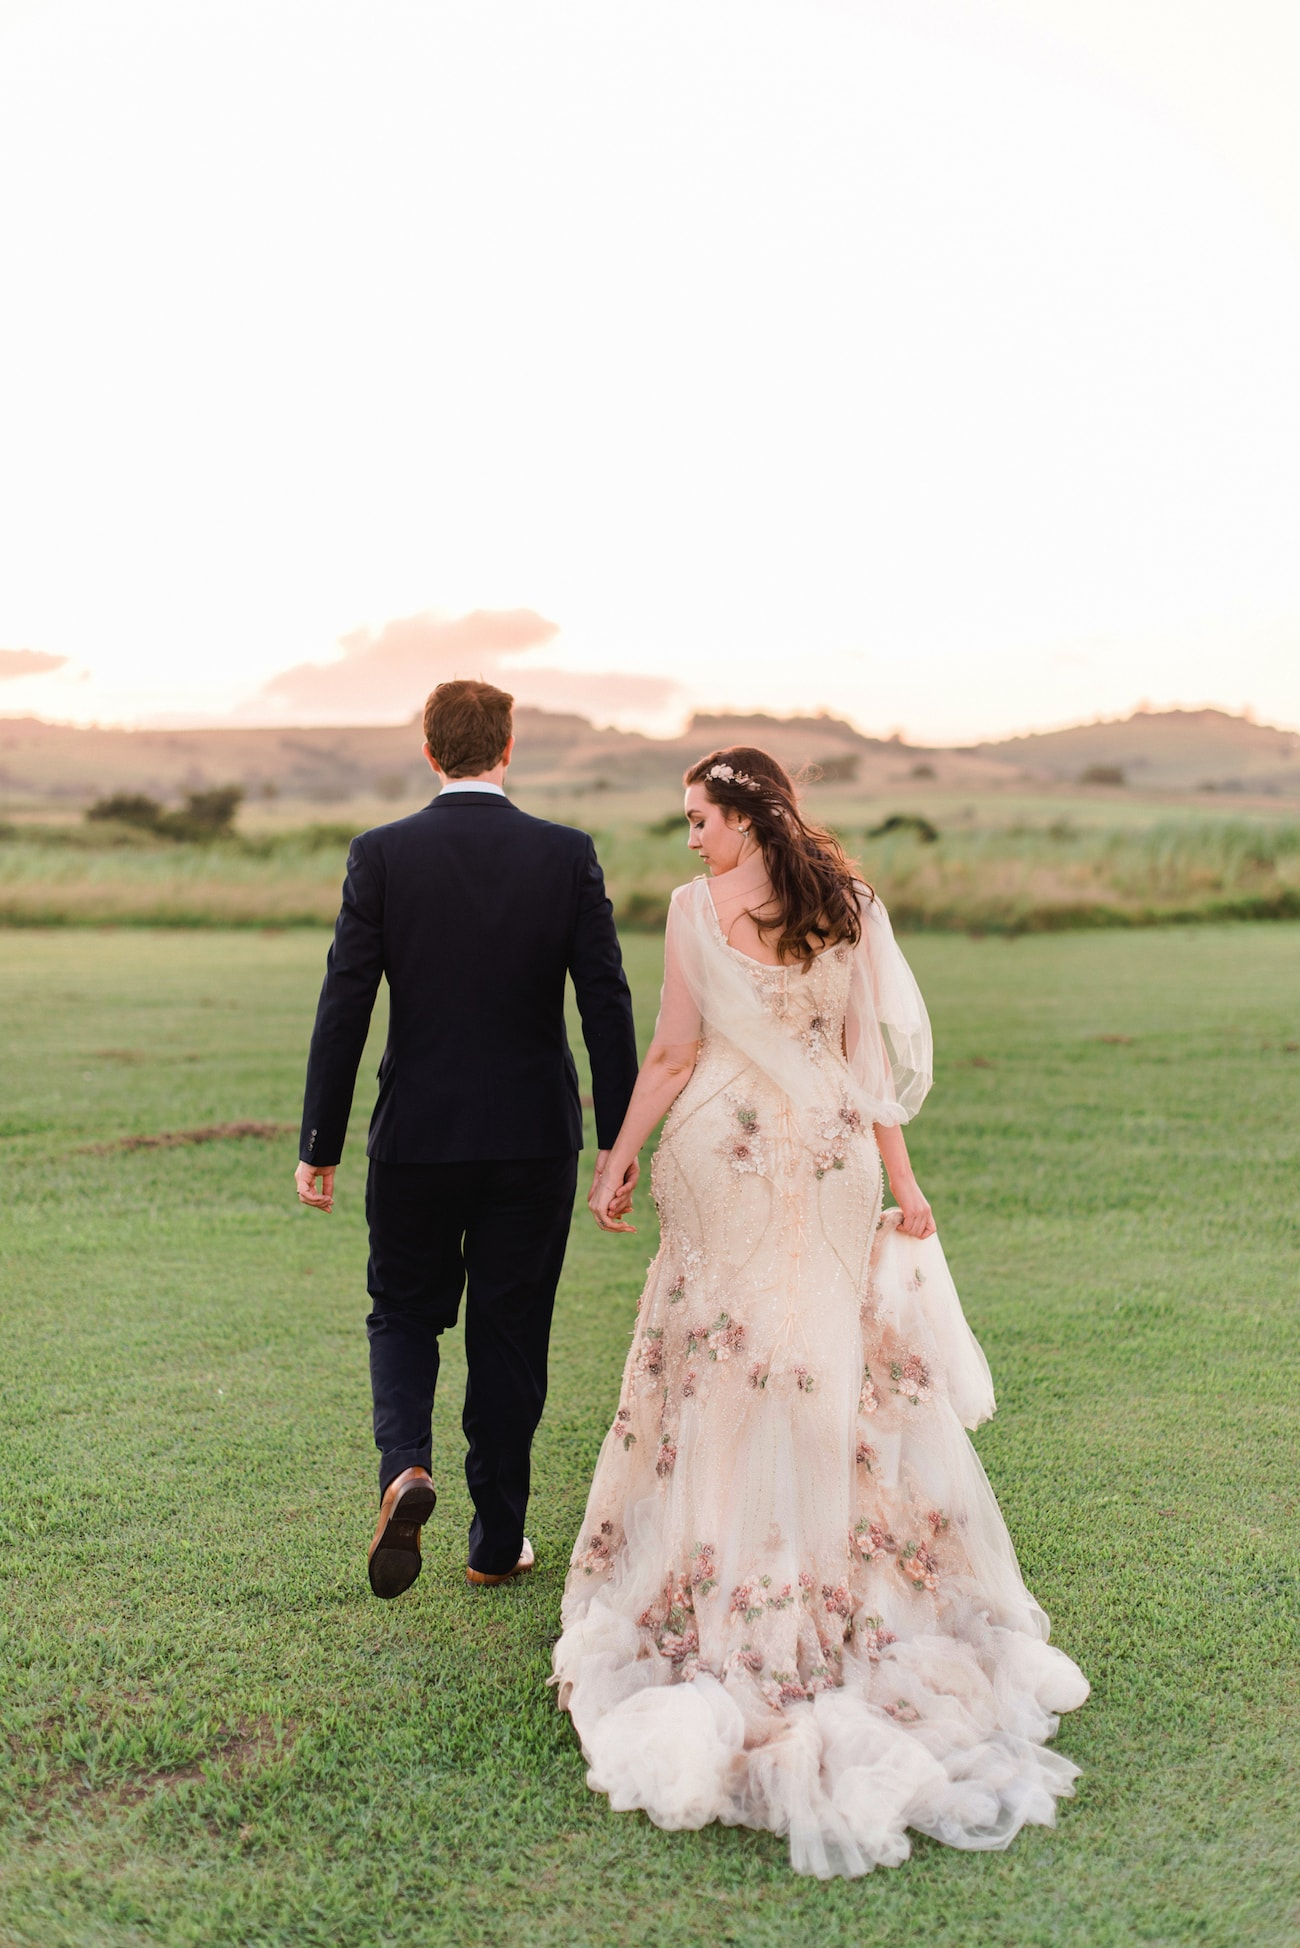 Magical Midsummer Night's Dream Inspired Wedding with a McCarthy Wolff Dress | Image: Roxanne Davison